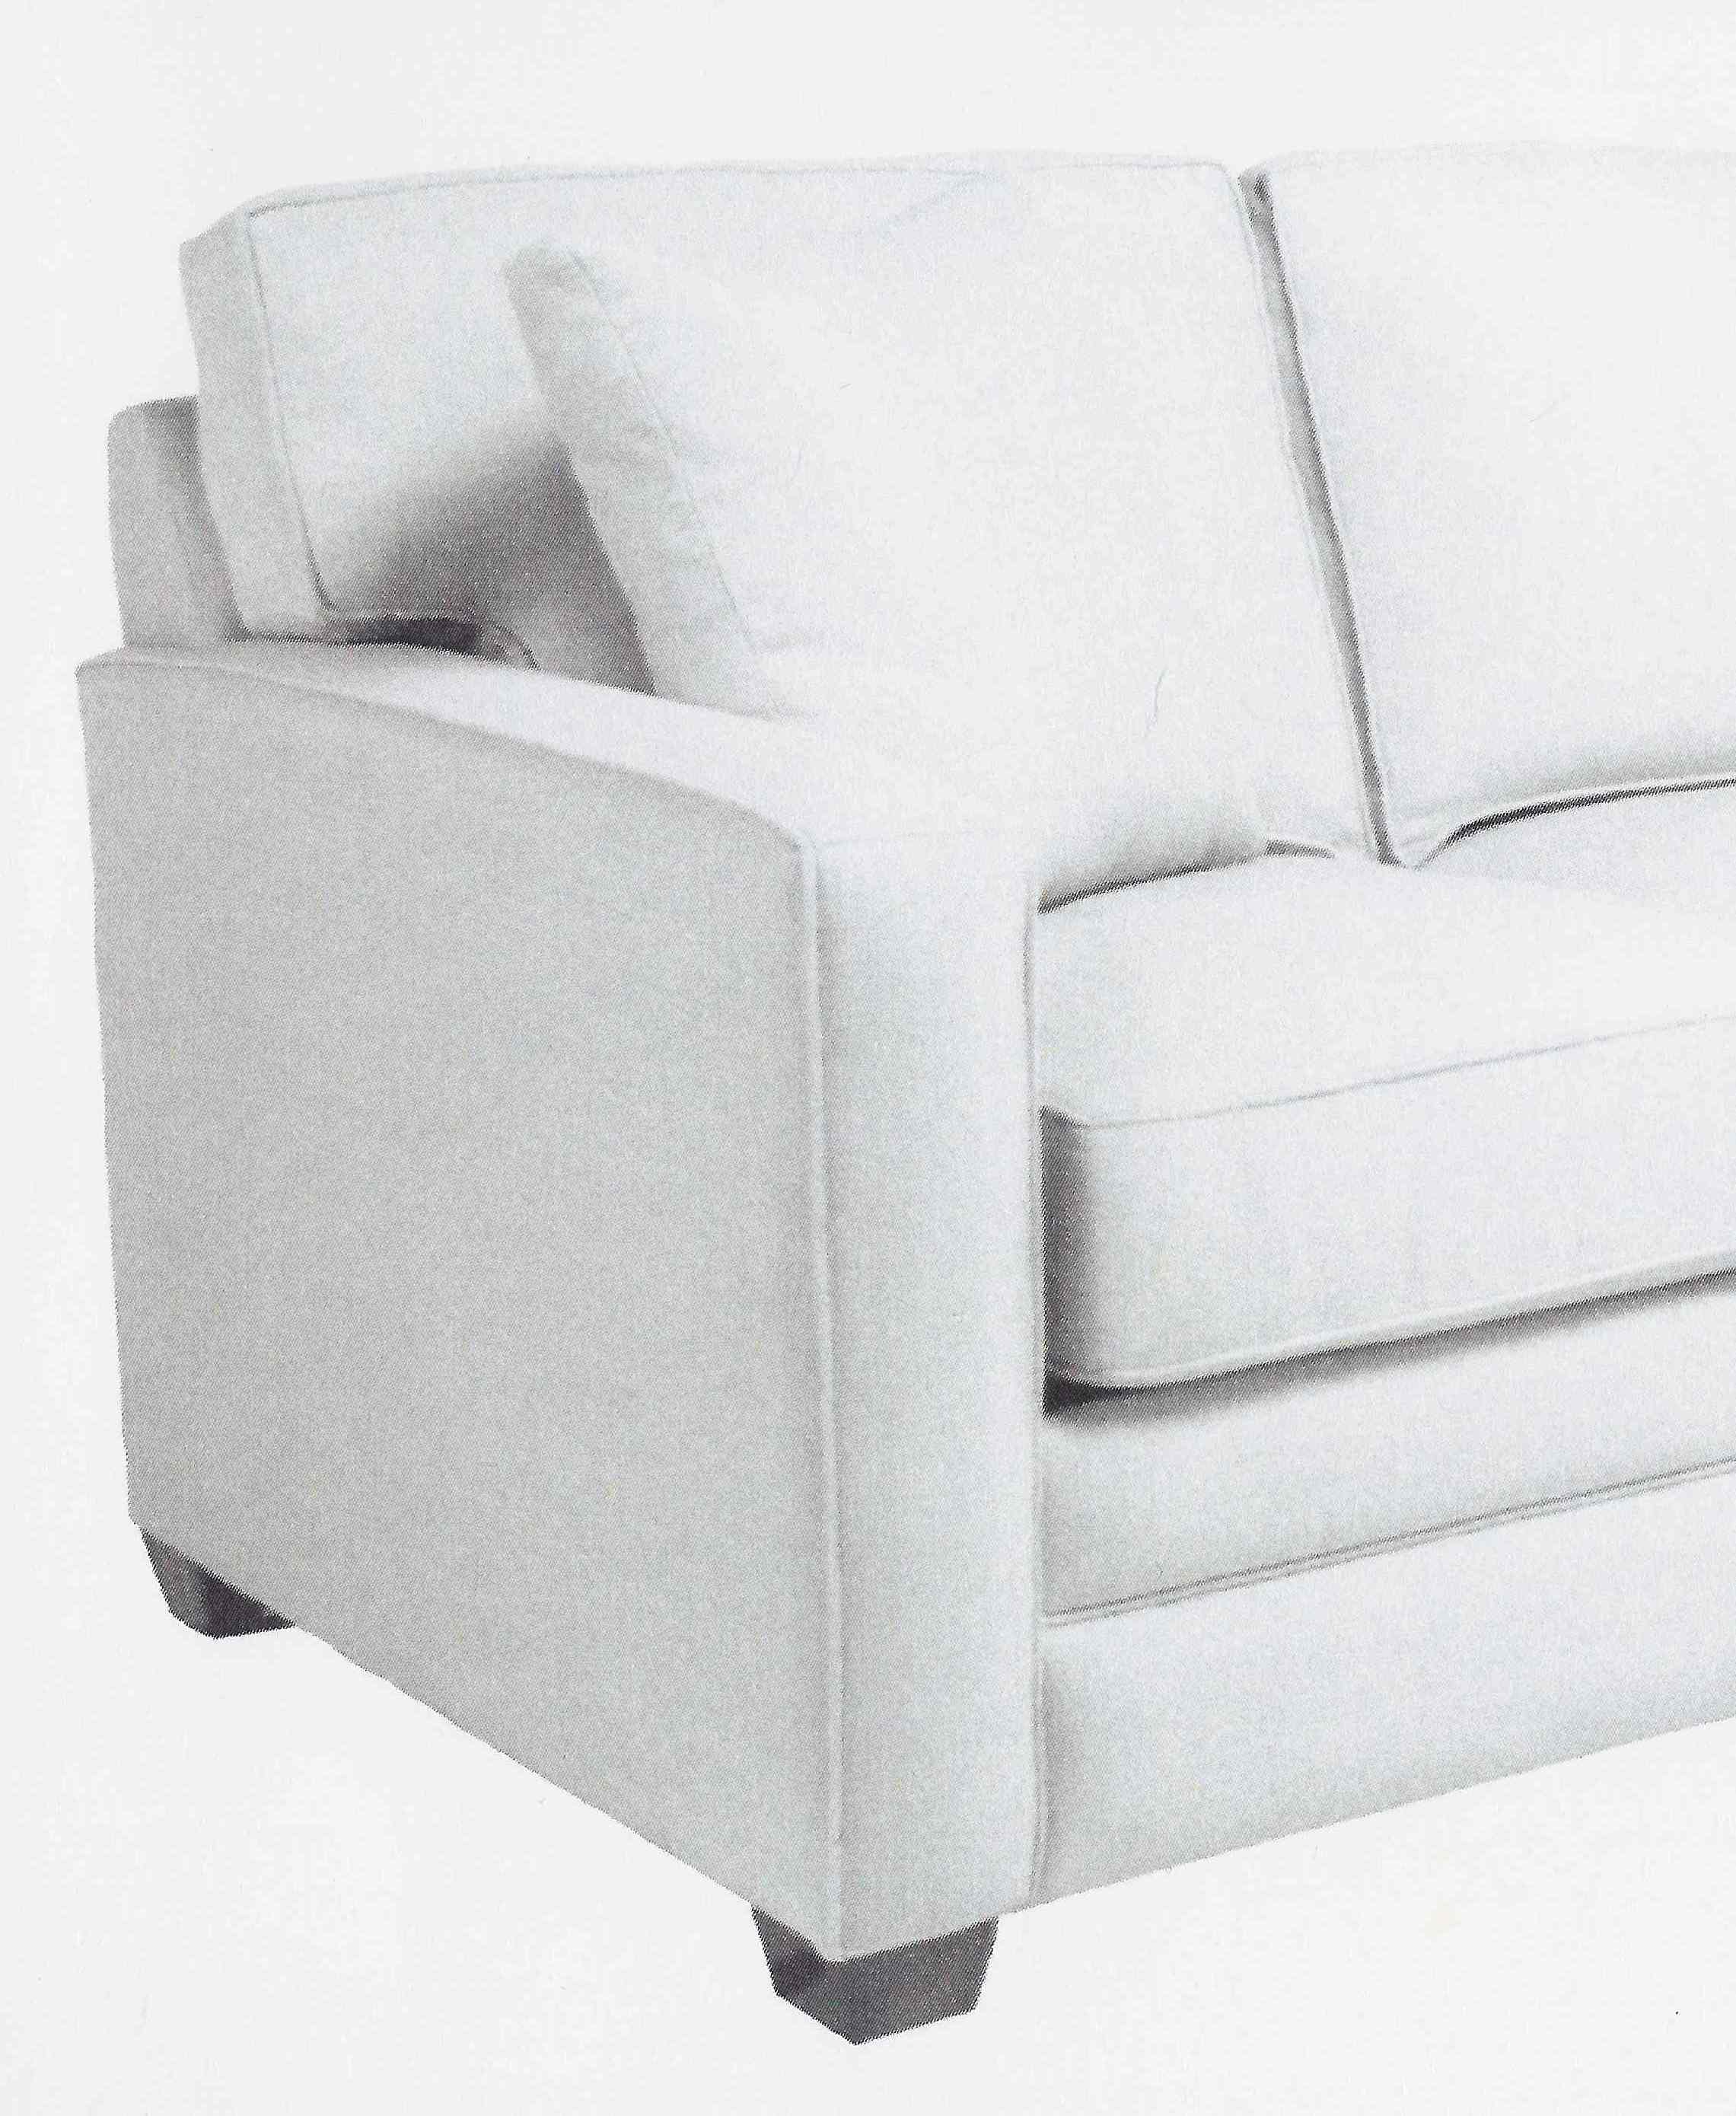 What Kind of Sofa or Chair Should I Buy